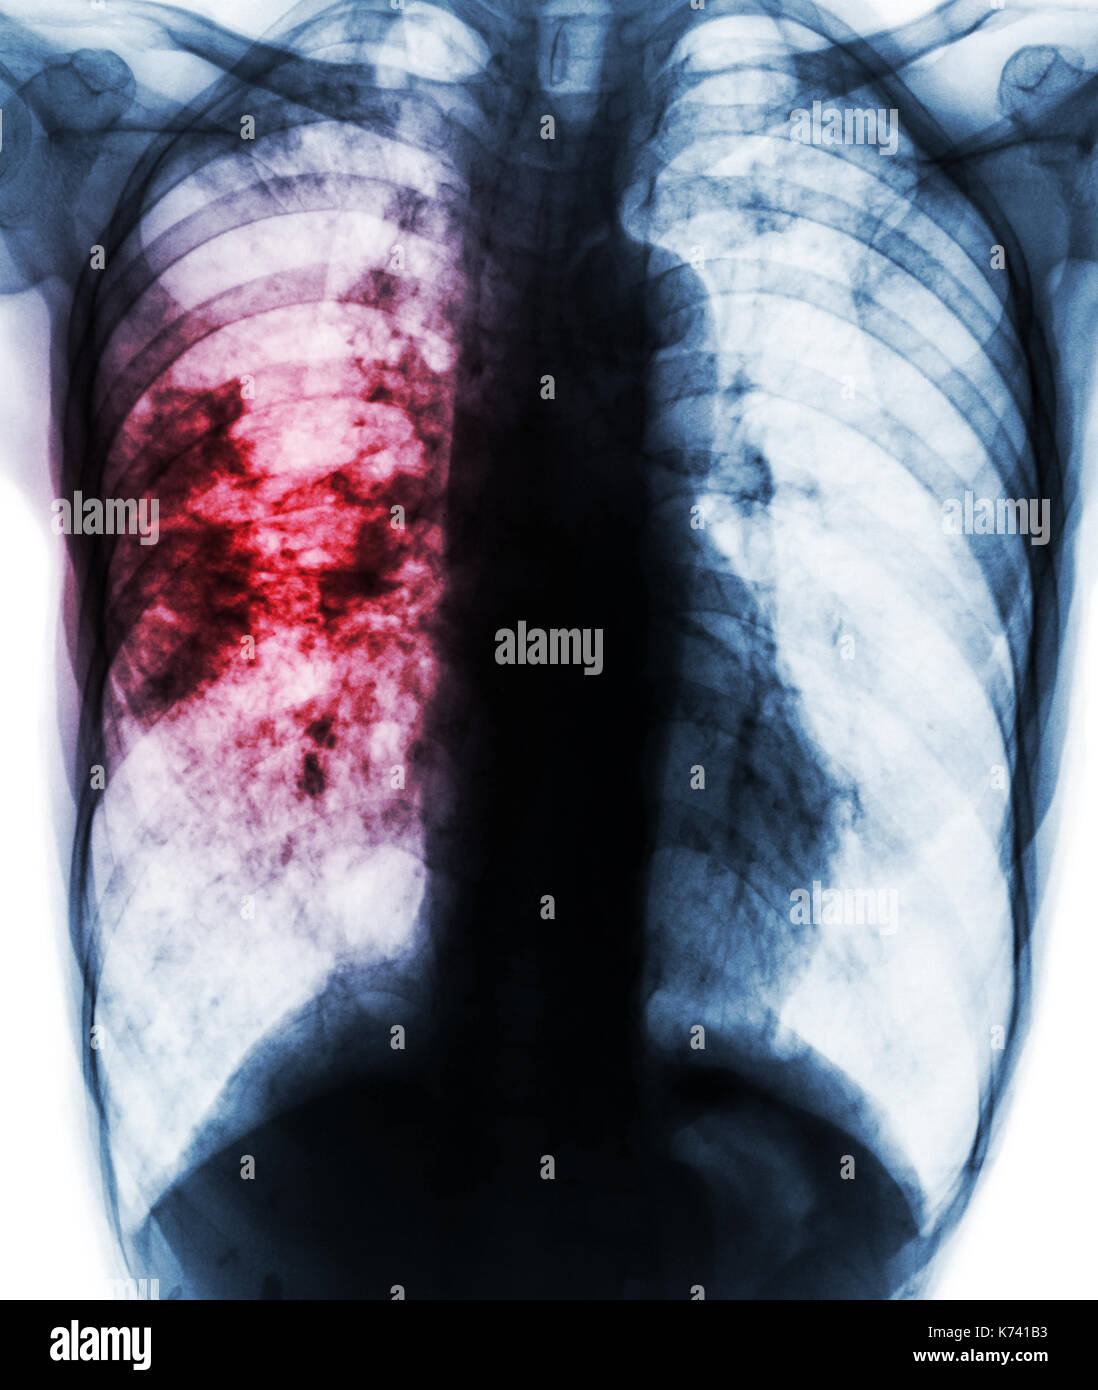 Pulmonary tuberculosis . Film x-ray of chest show patchy infiltrate at right lung due to TB infection . - Stock Image